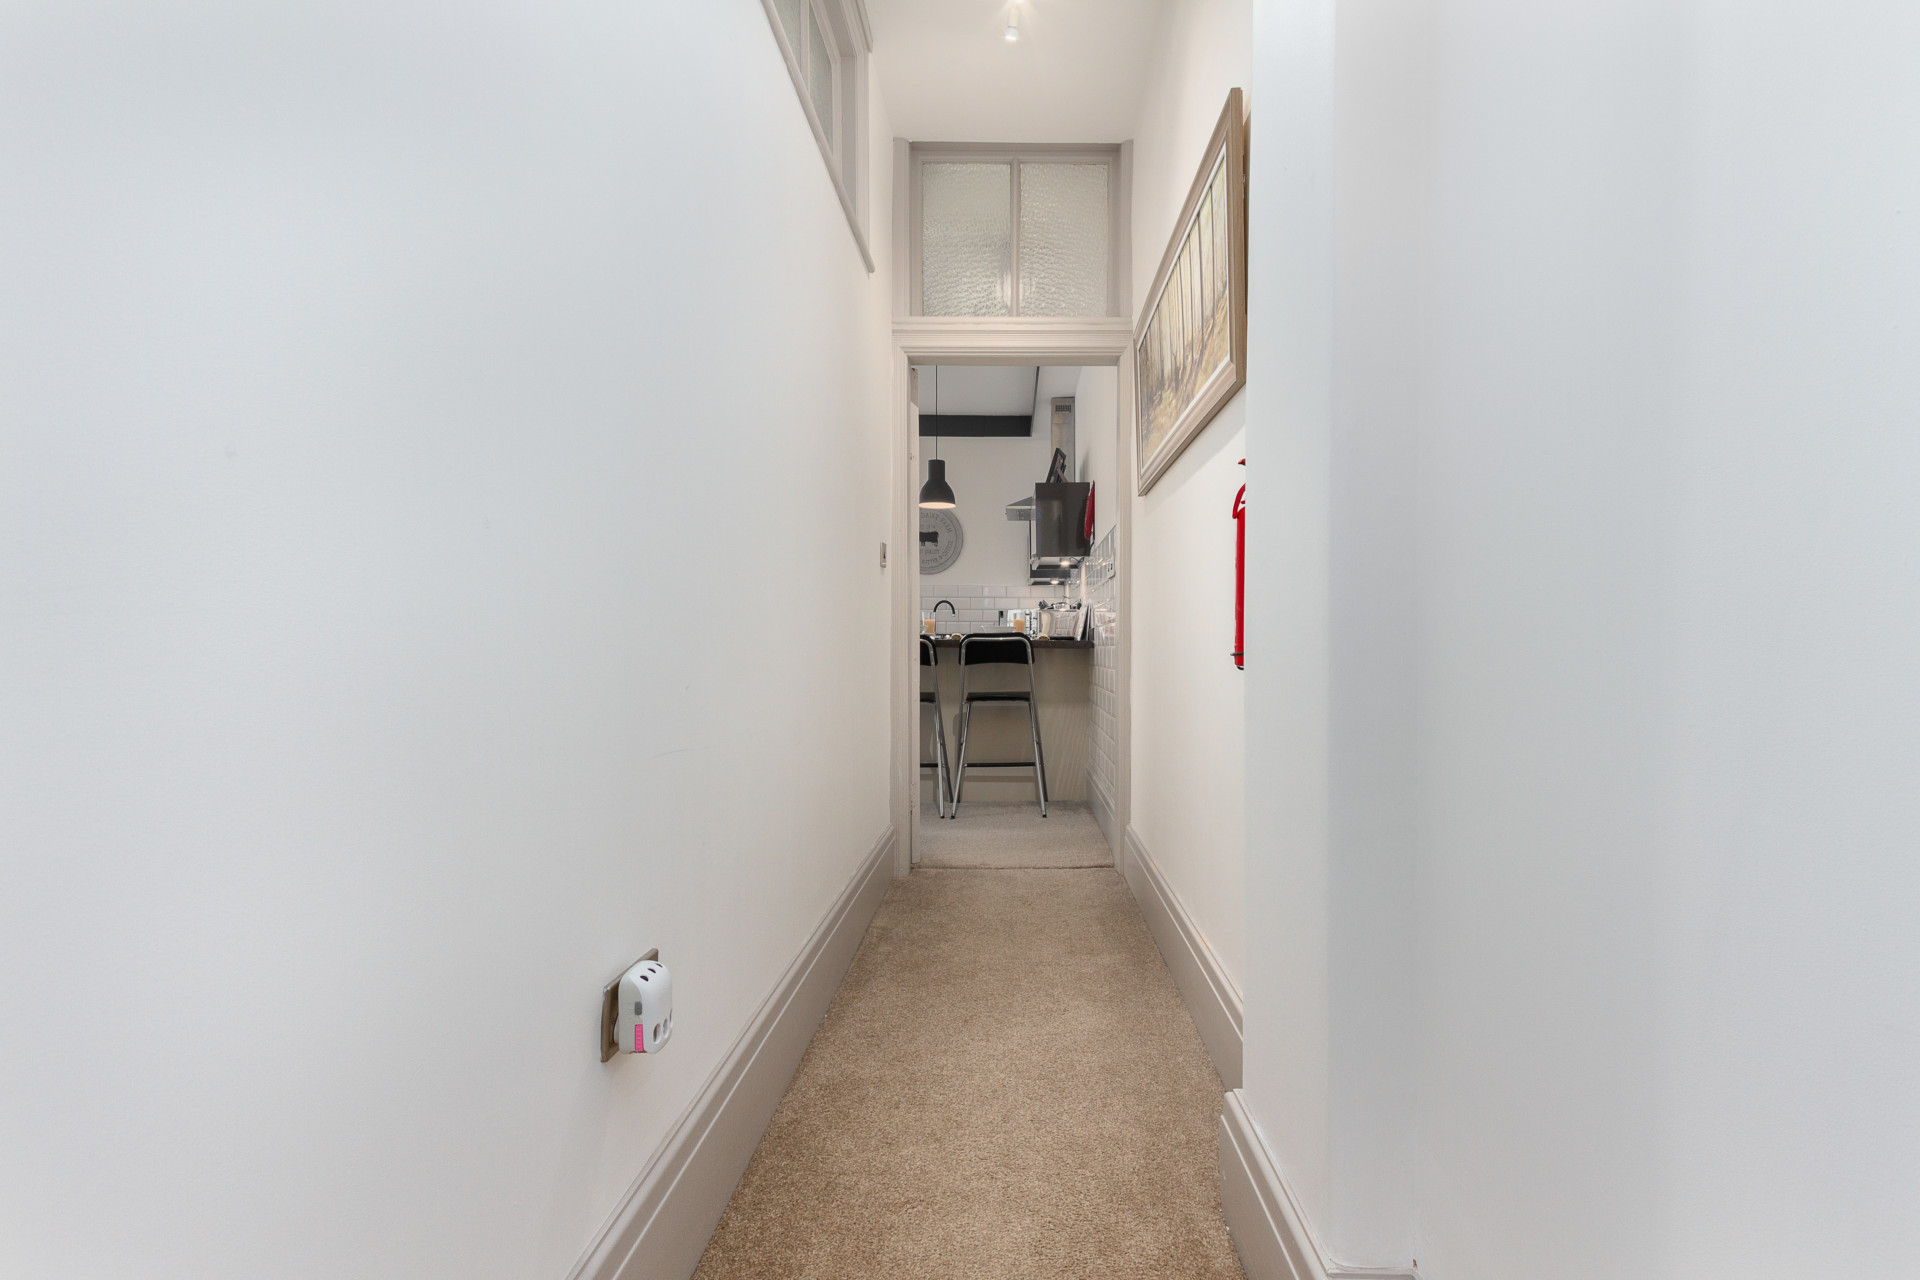 Internal hallway leading to the kitchen